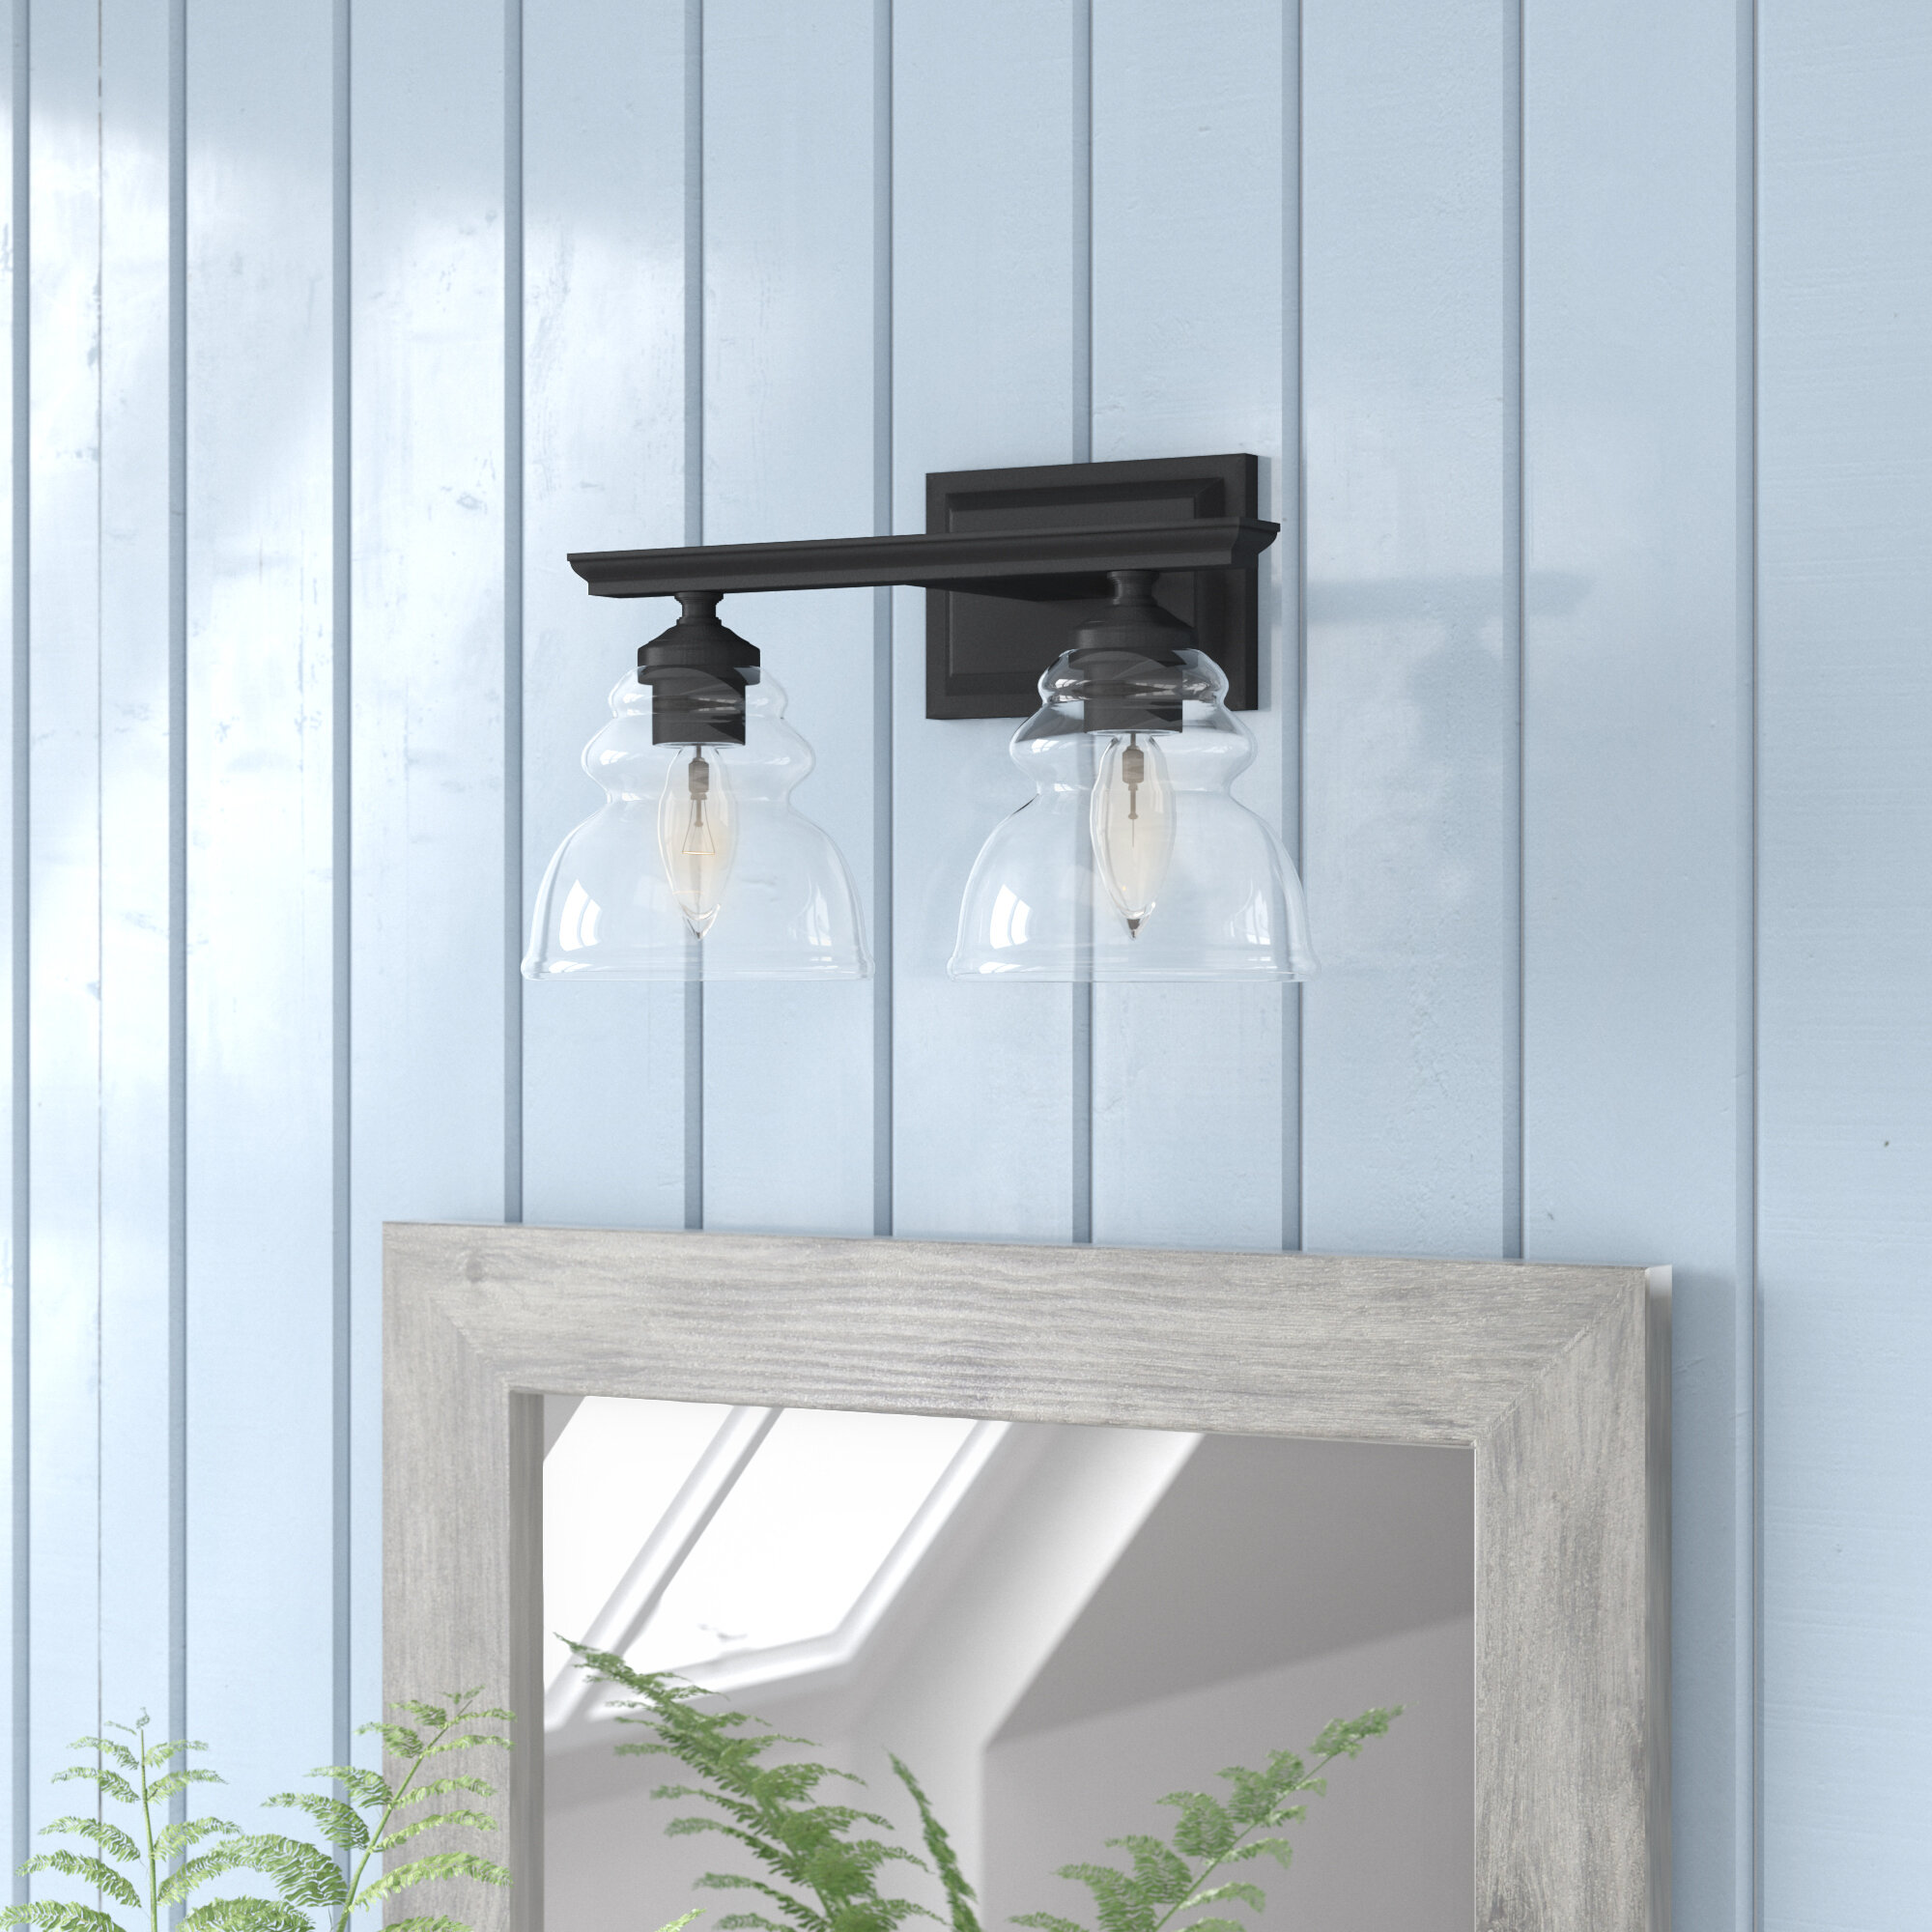 Laurel foundry modern farmhouse alene 2 light armed sconce reviews wayfair